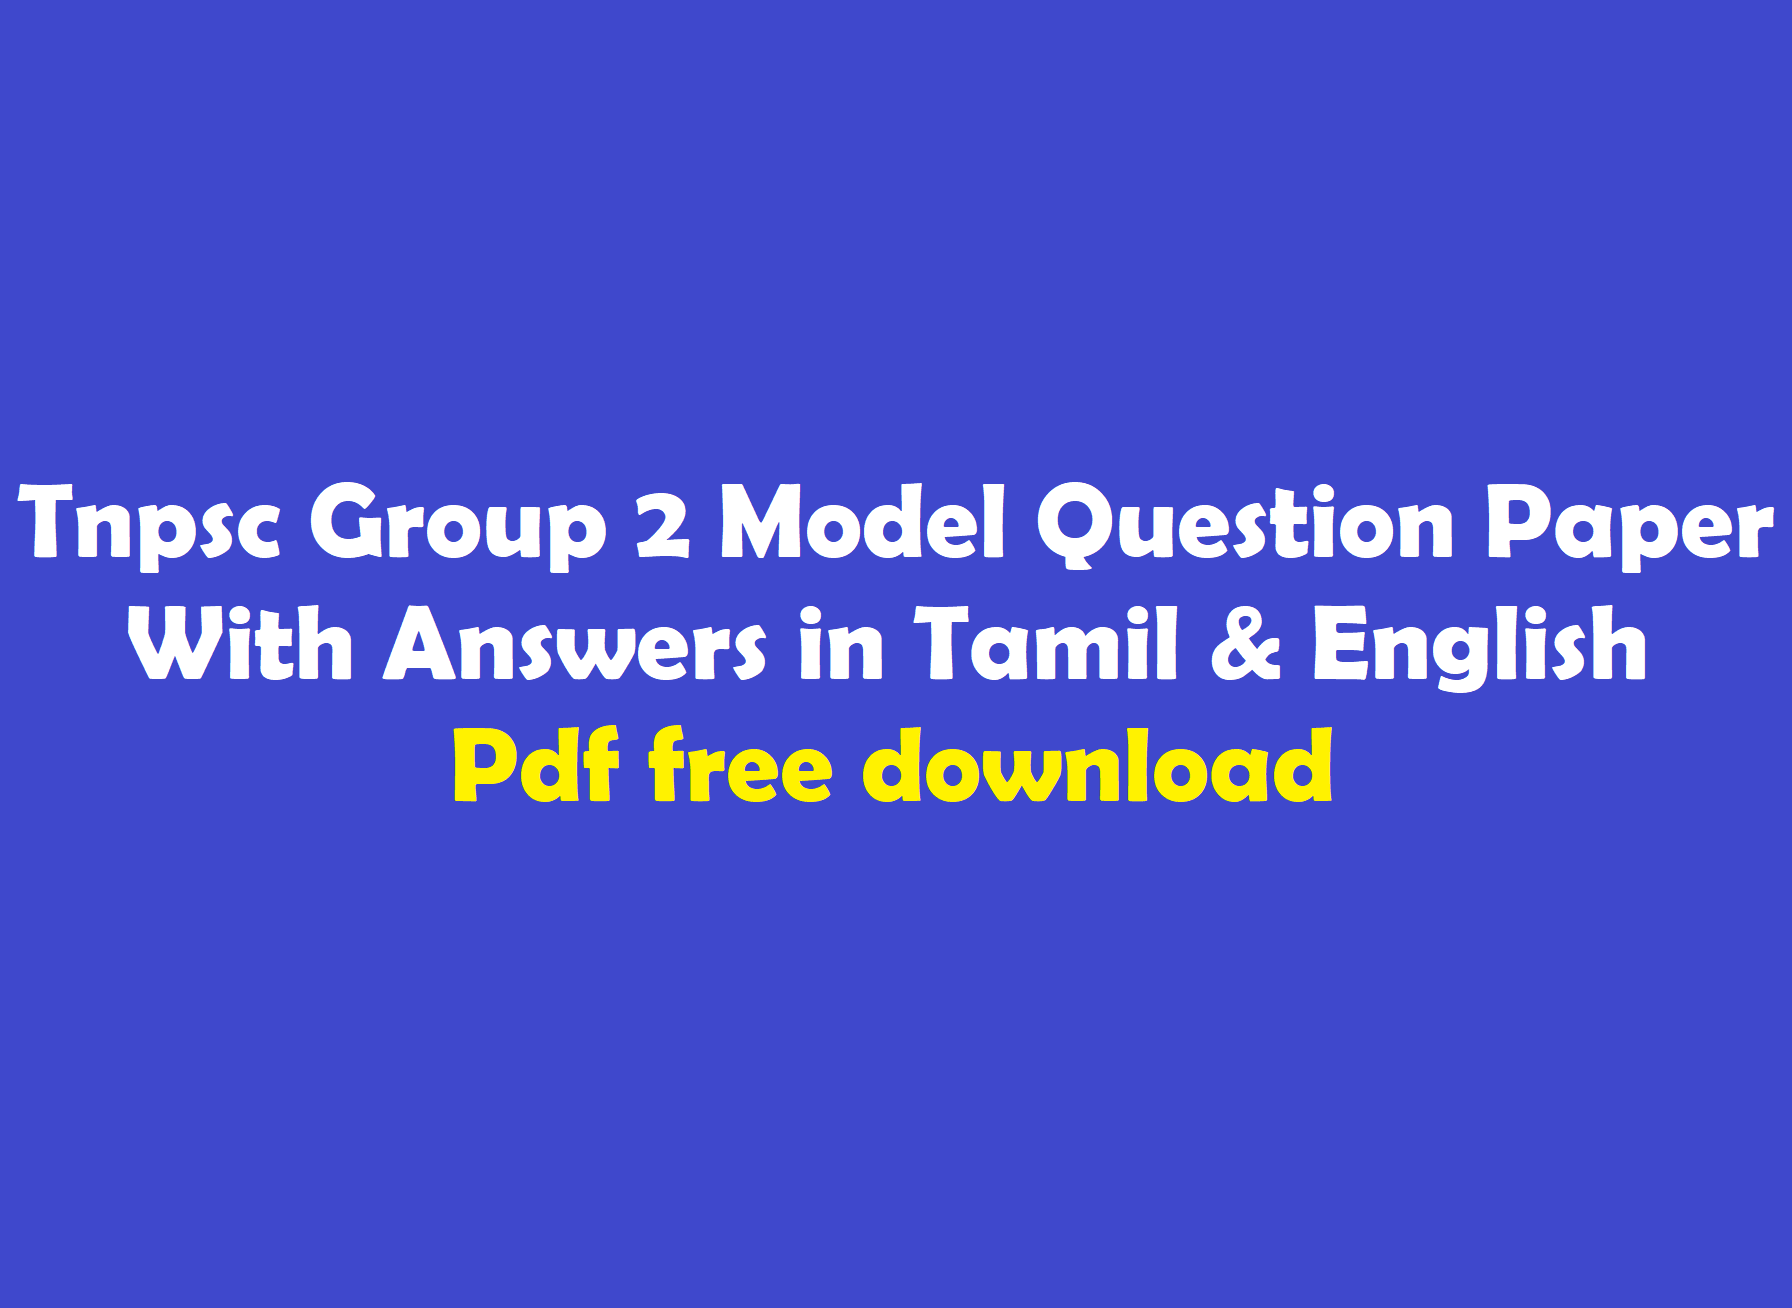 Tnpsc Group 2 Model Question Paper With Answers In Tamil